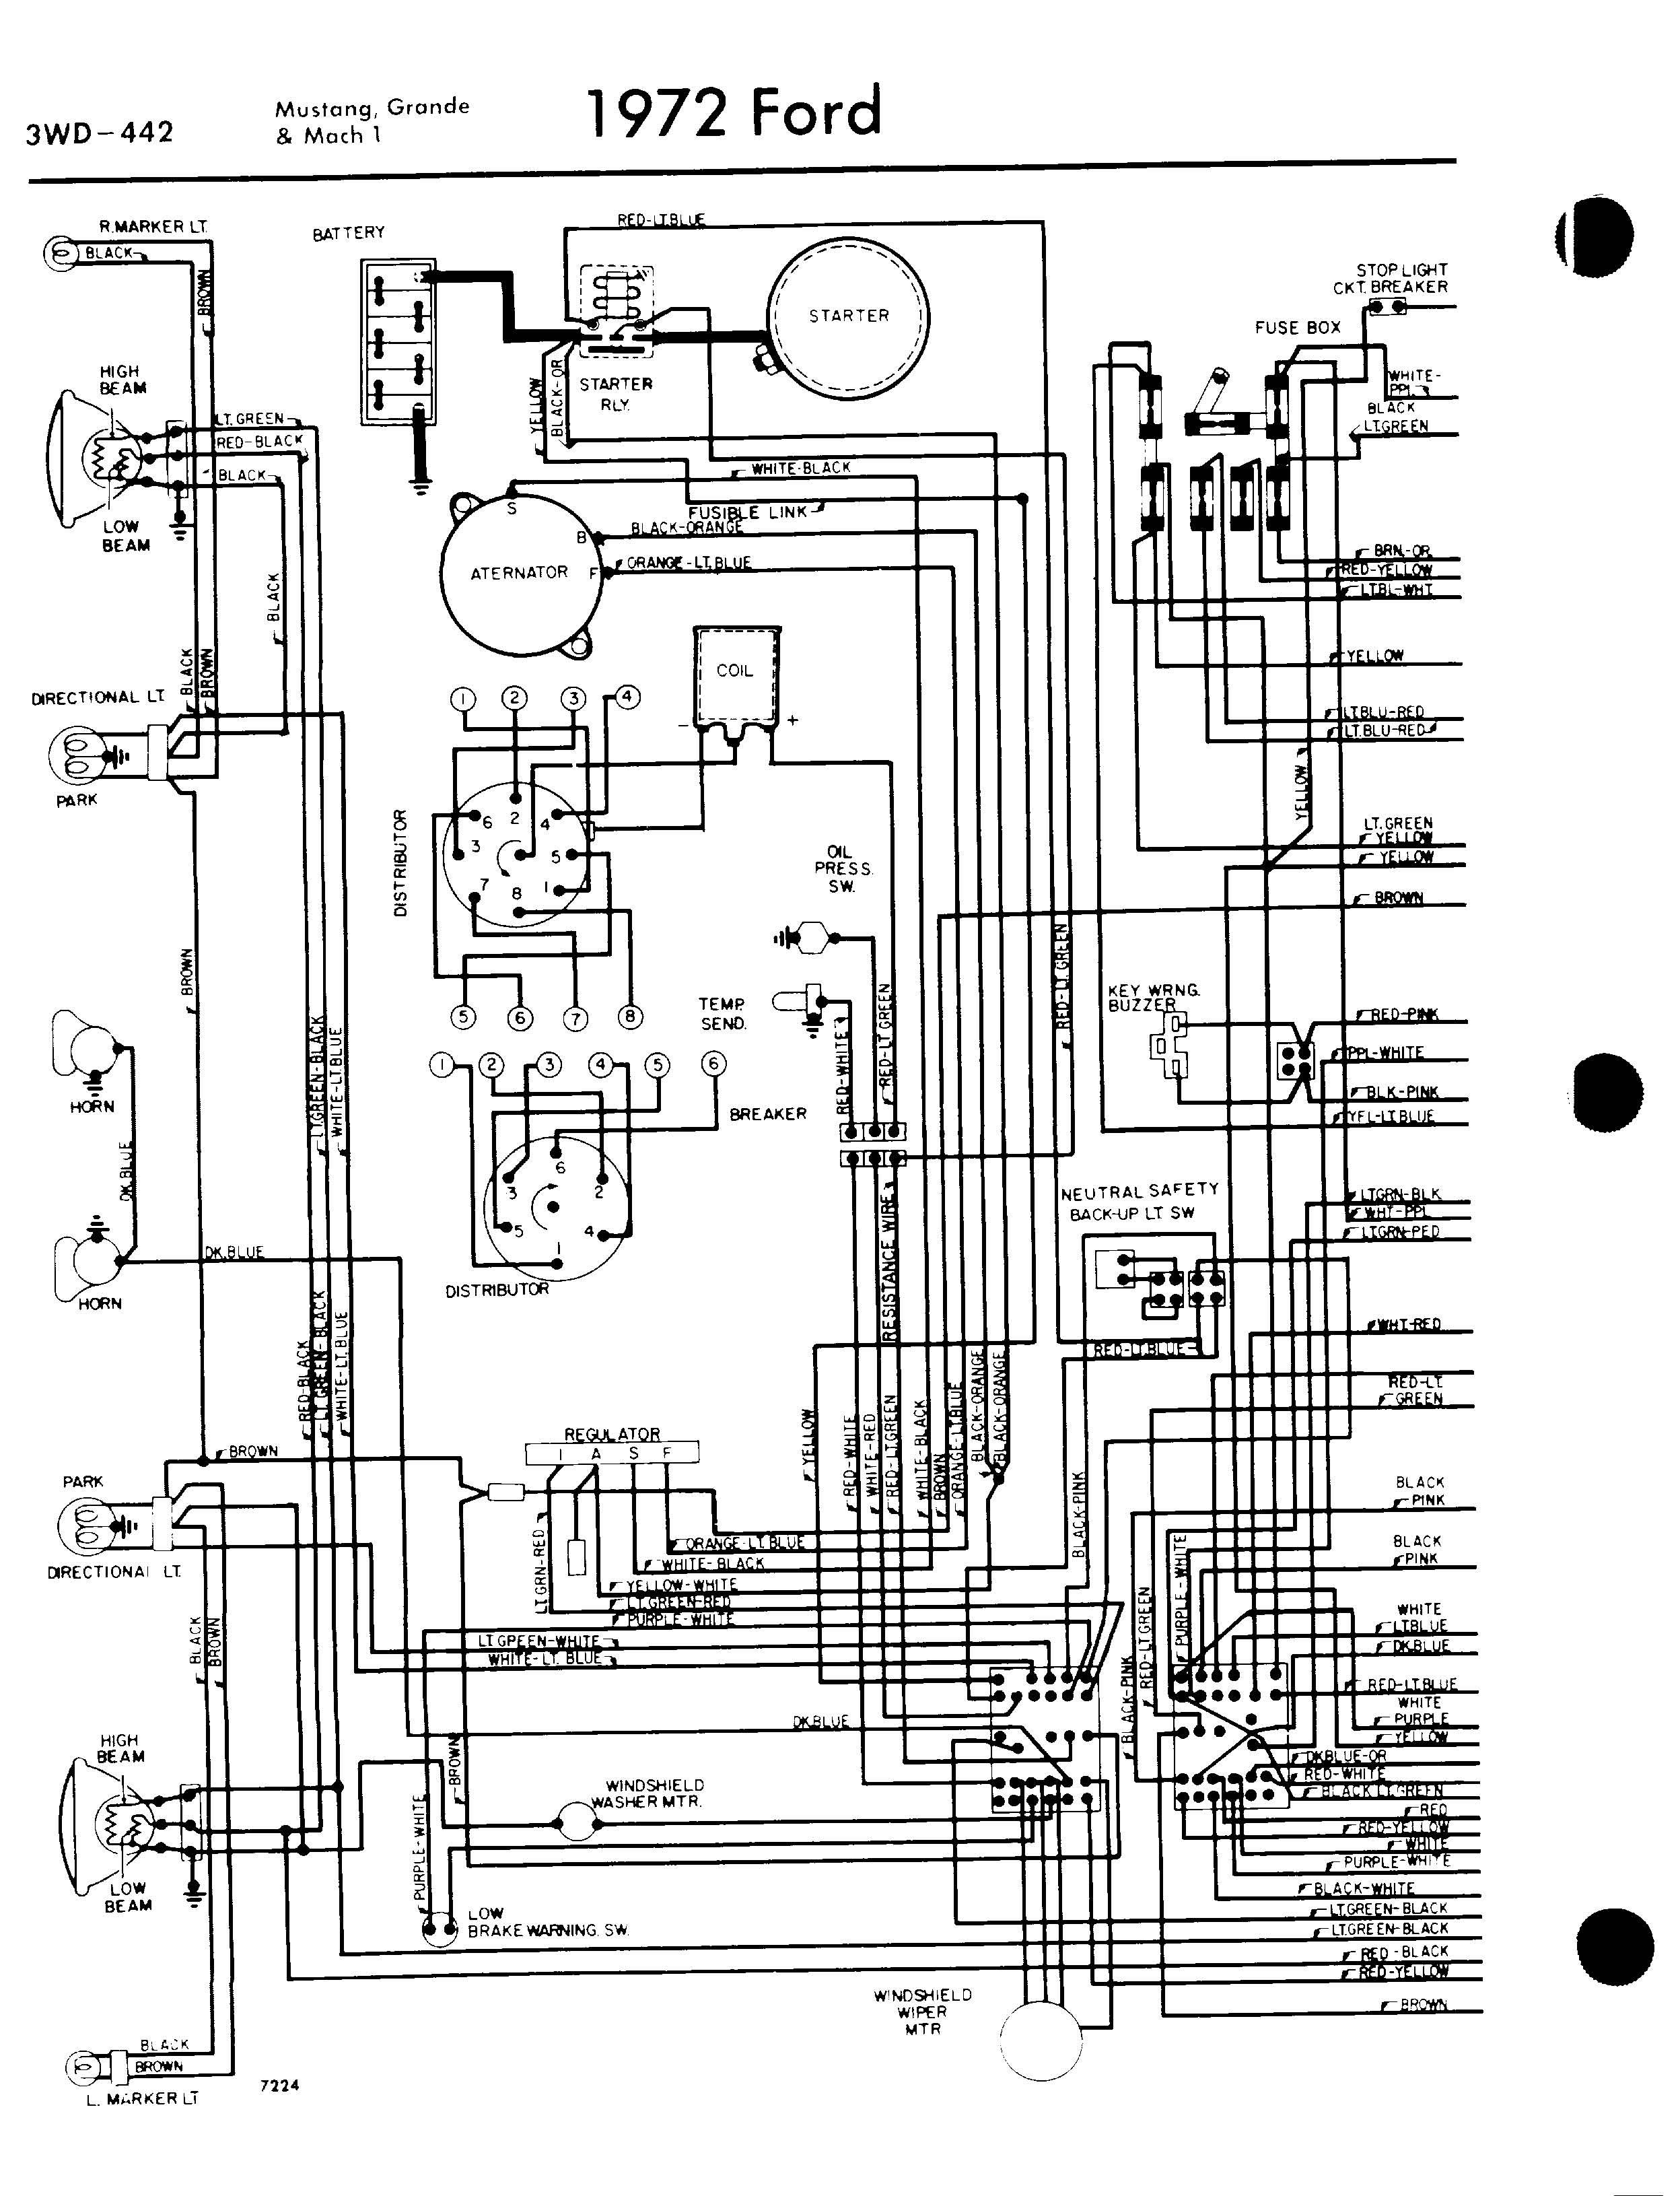 71af7a58e095e6a7716b32f1b23e8bd2 72 mach1 alternator wire harness diagram yahoo search results 1969 Ford Mustang Wiring Diagram at bayanpartner.co